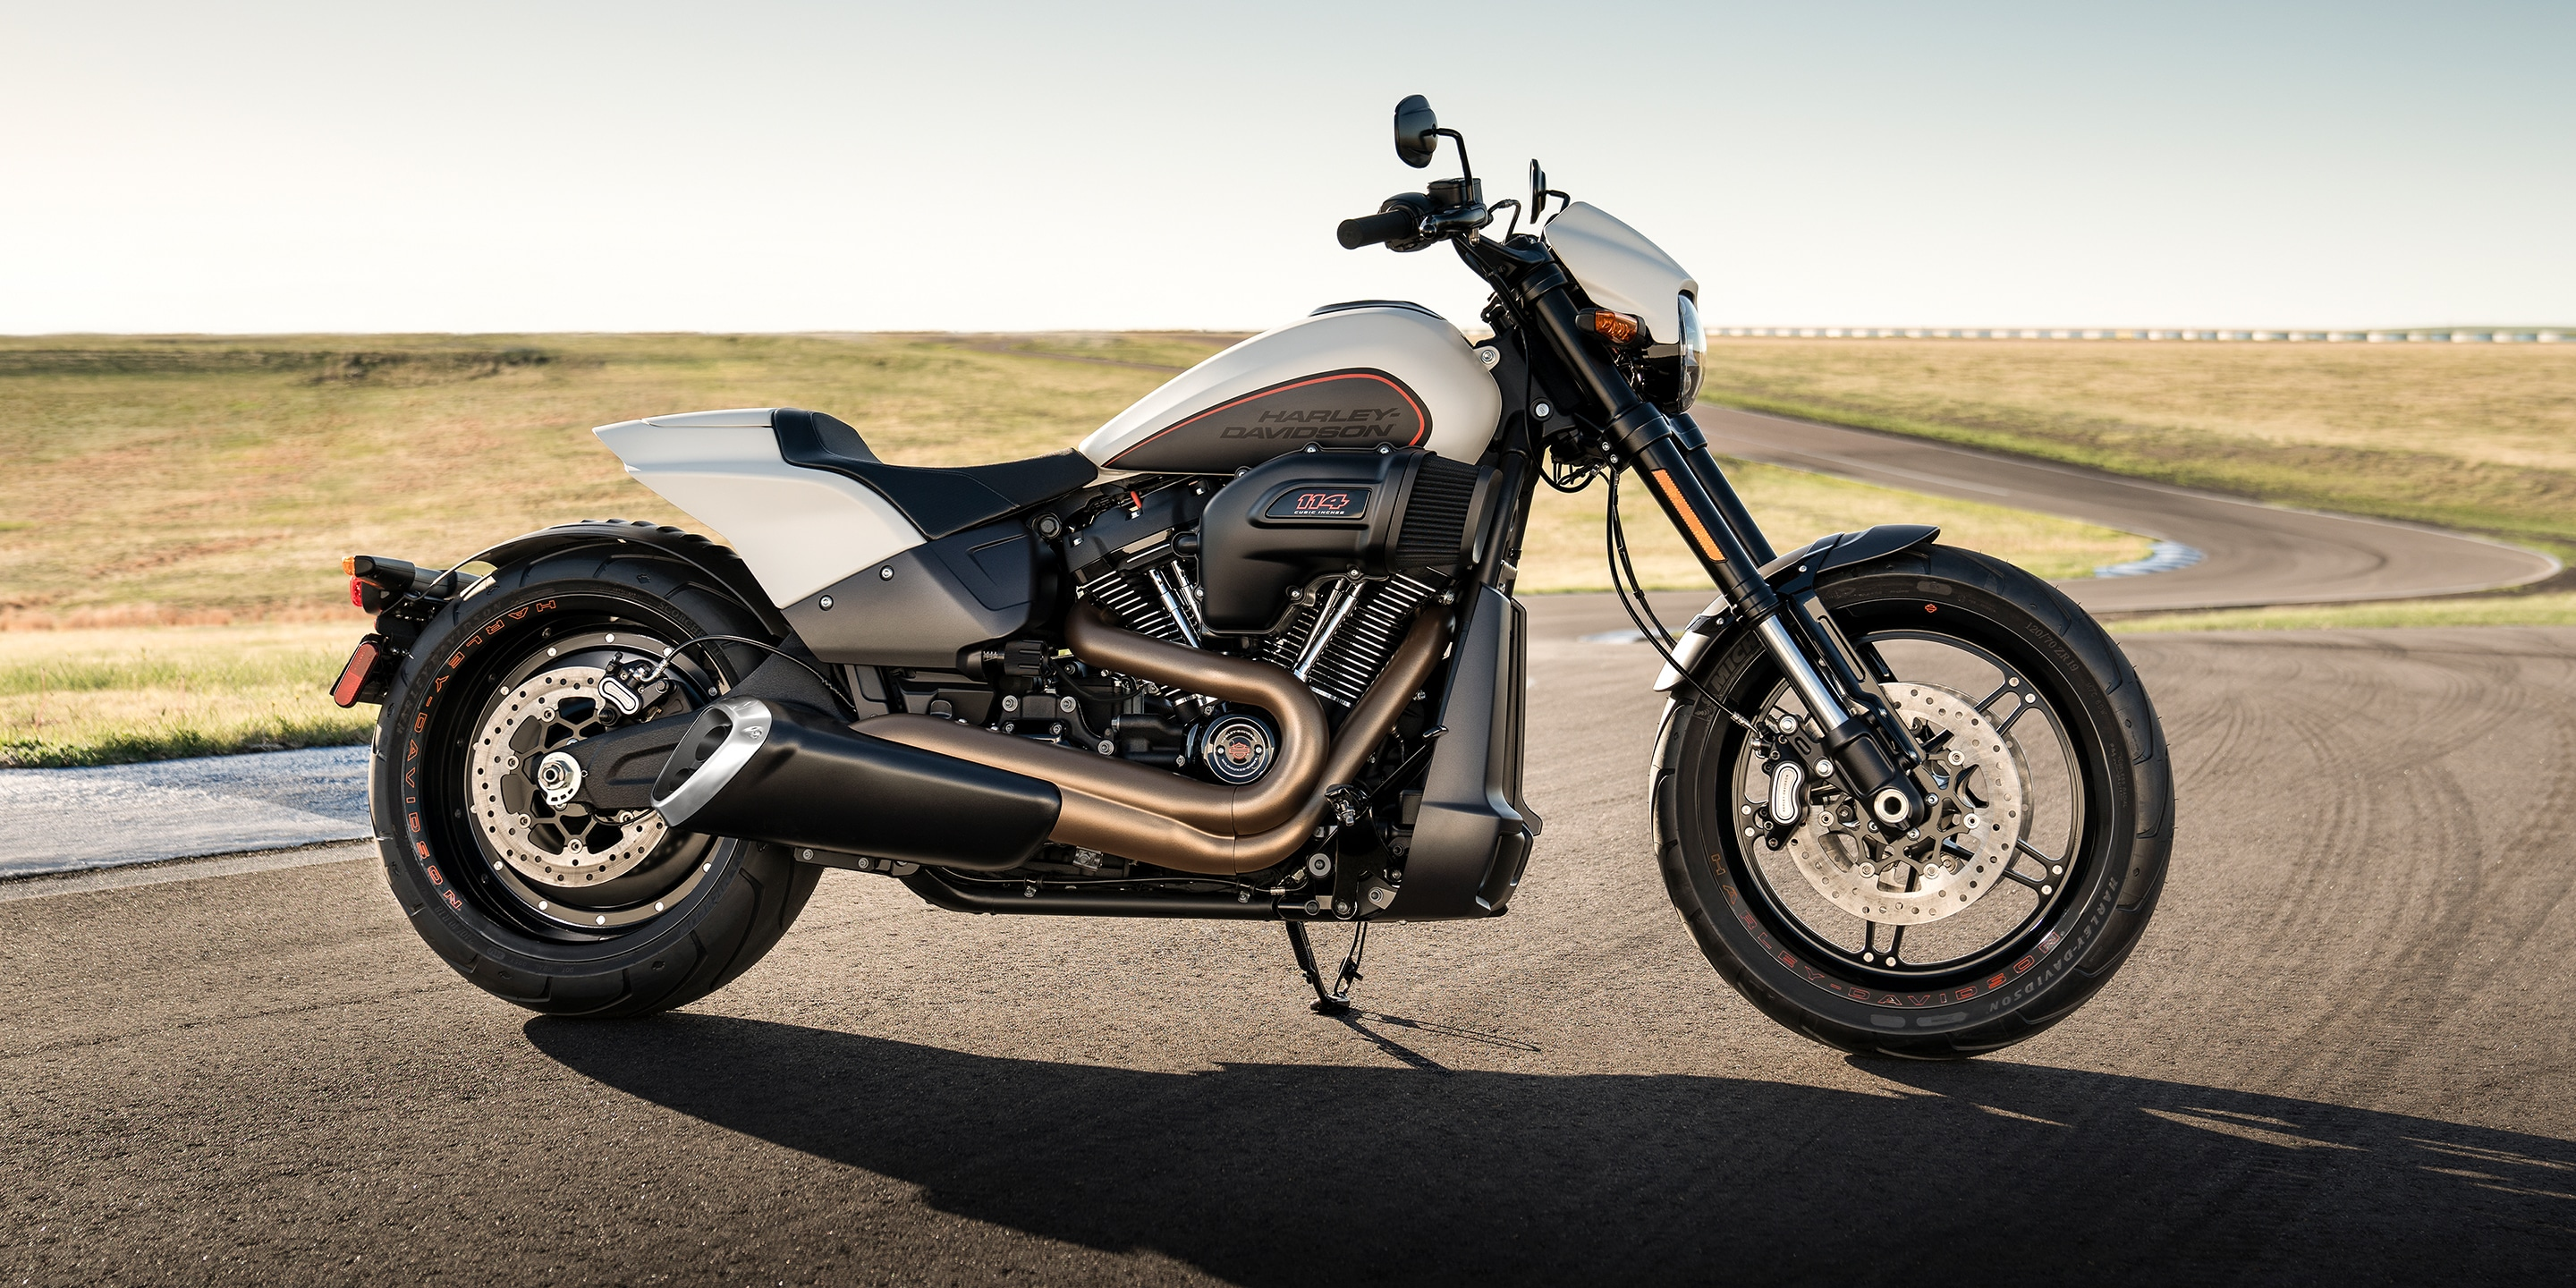 2019 fxdr114 motorcycle parked on street